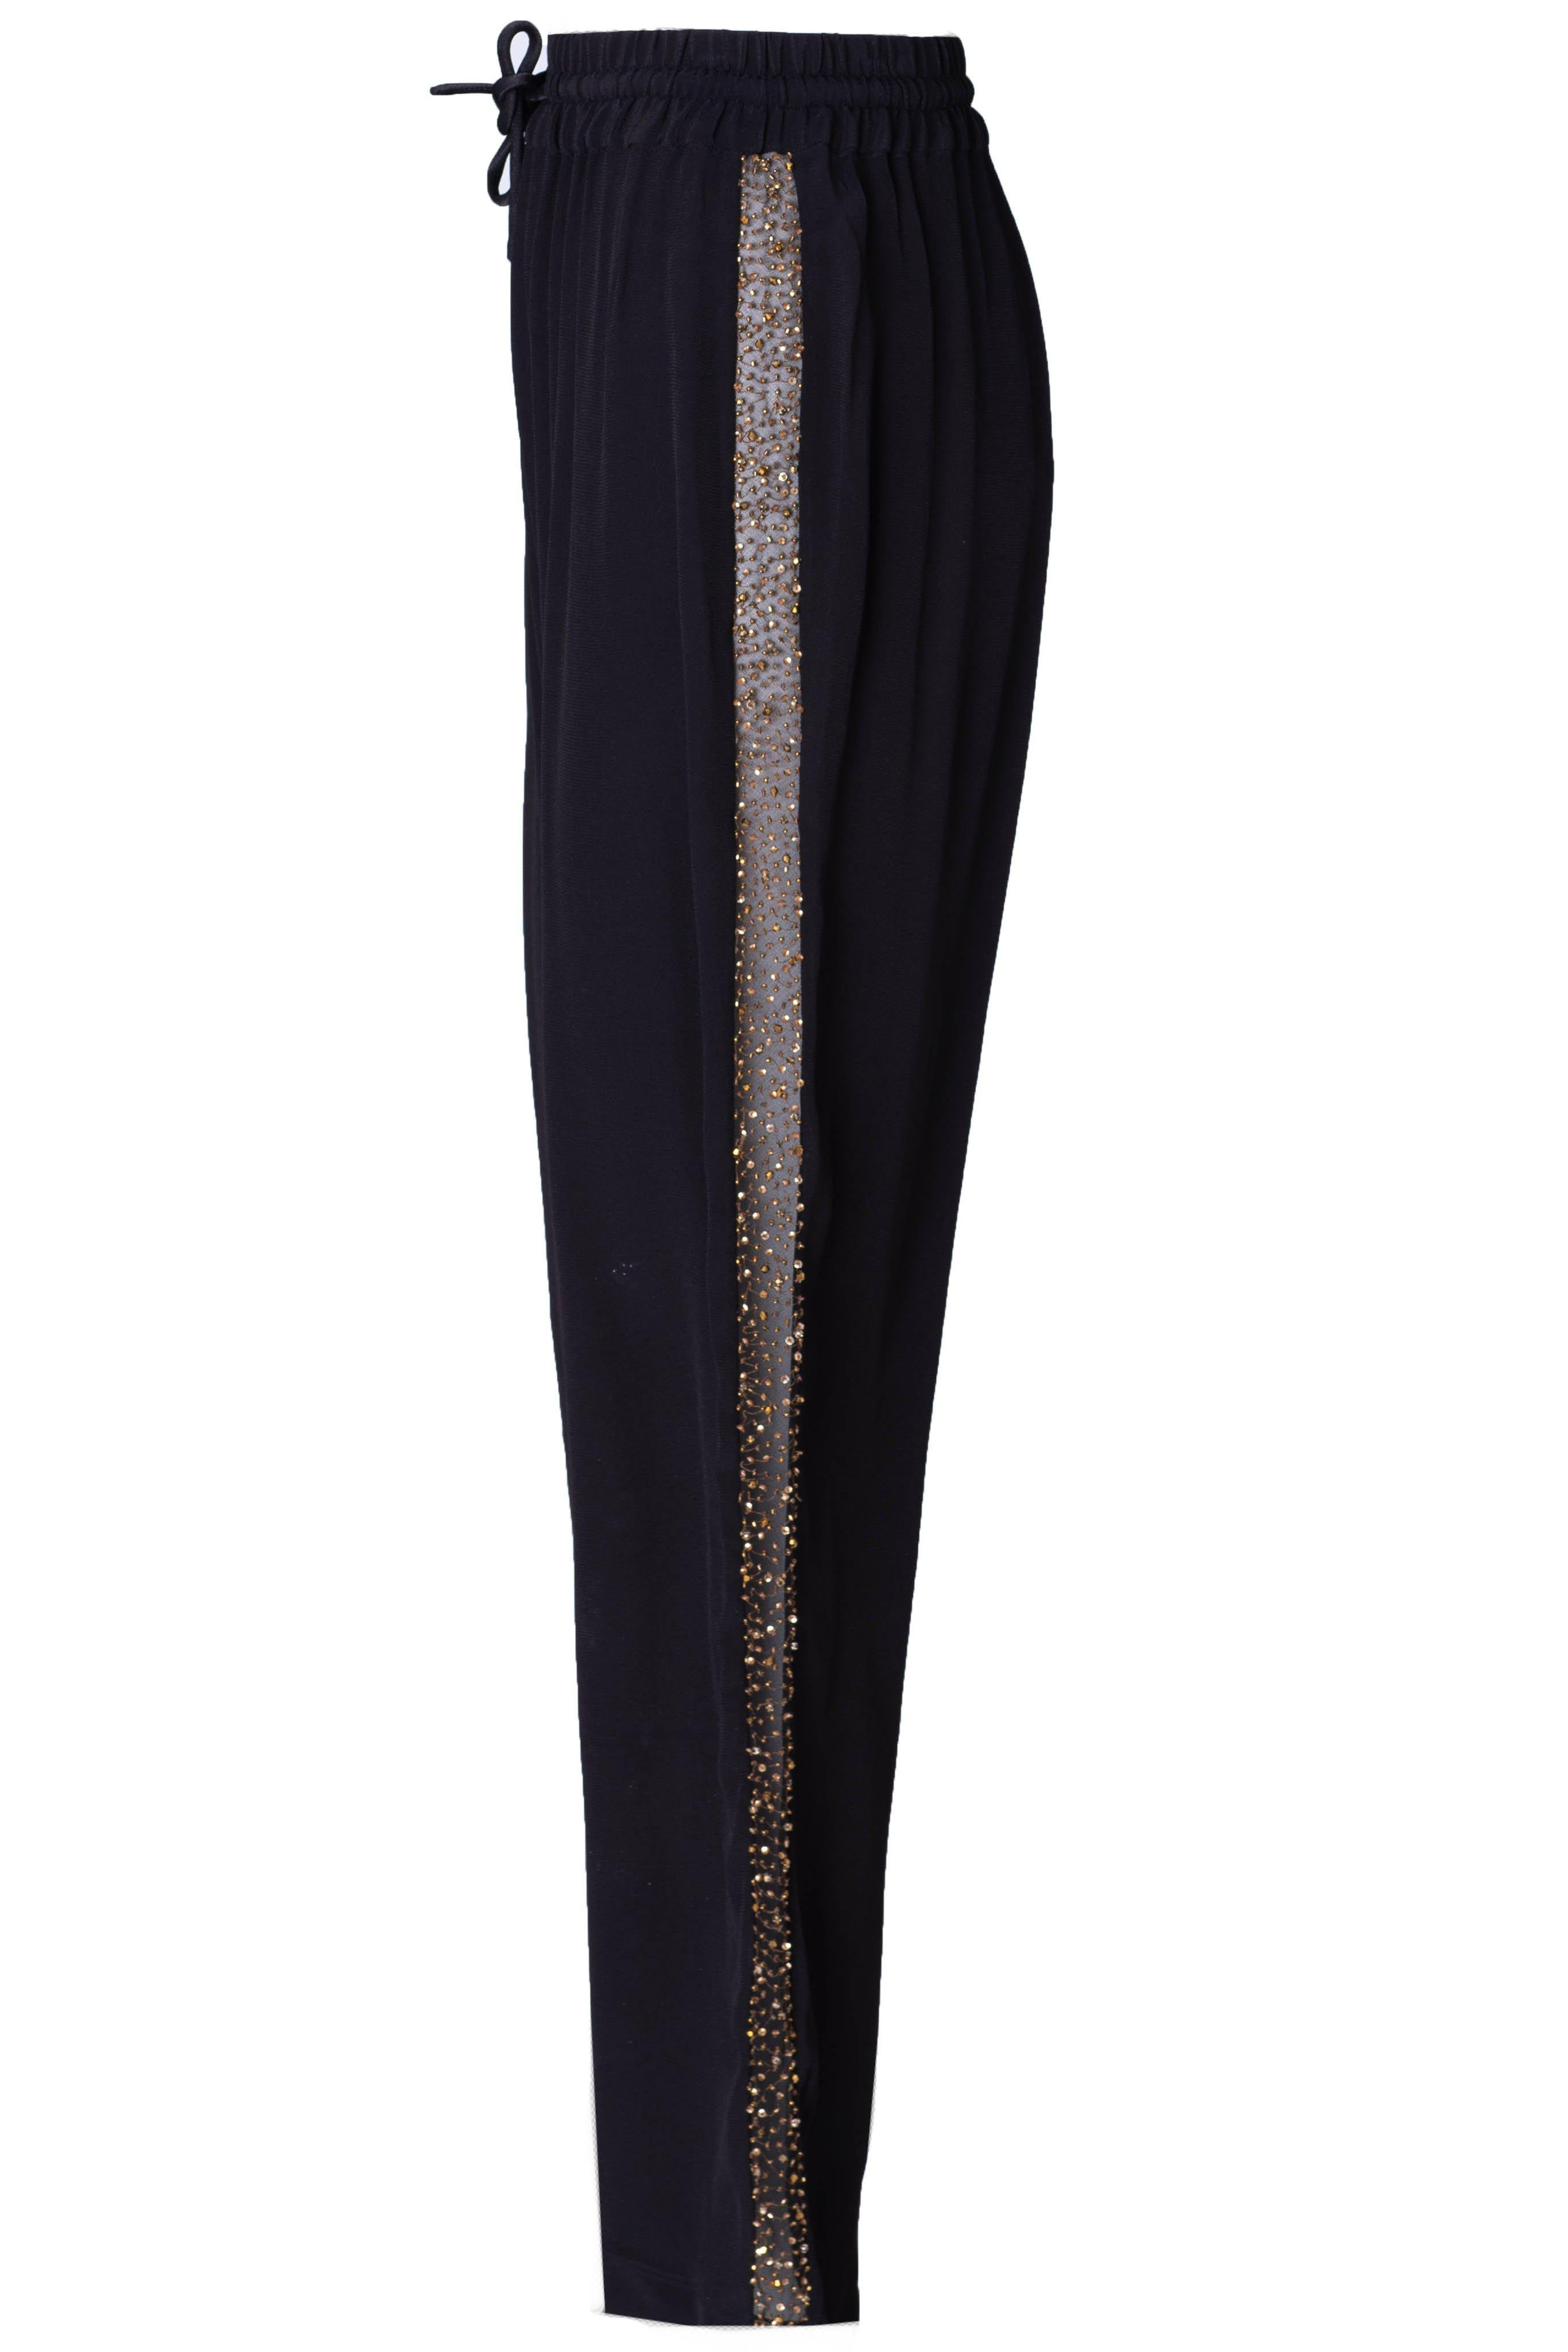 SEQUIN TRACK PANT 3